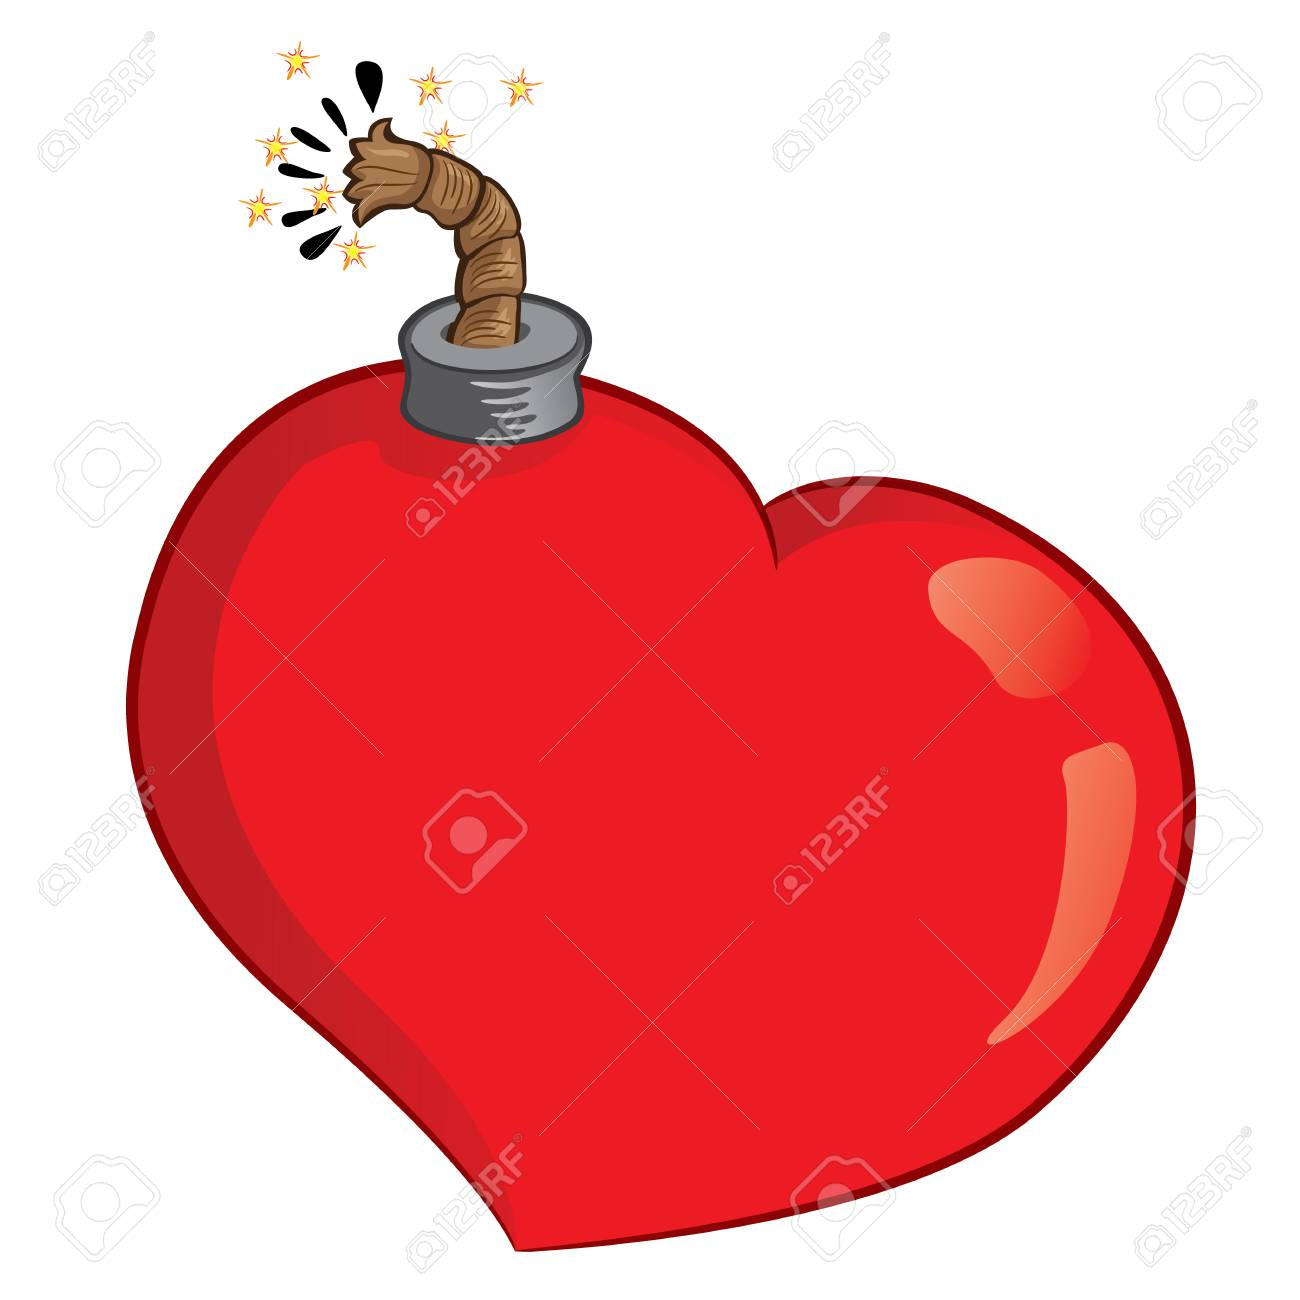 Icon Or Symbol Of A Heart Bomb, With Lit Fuse. Ideal For ...